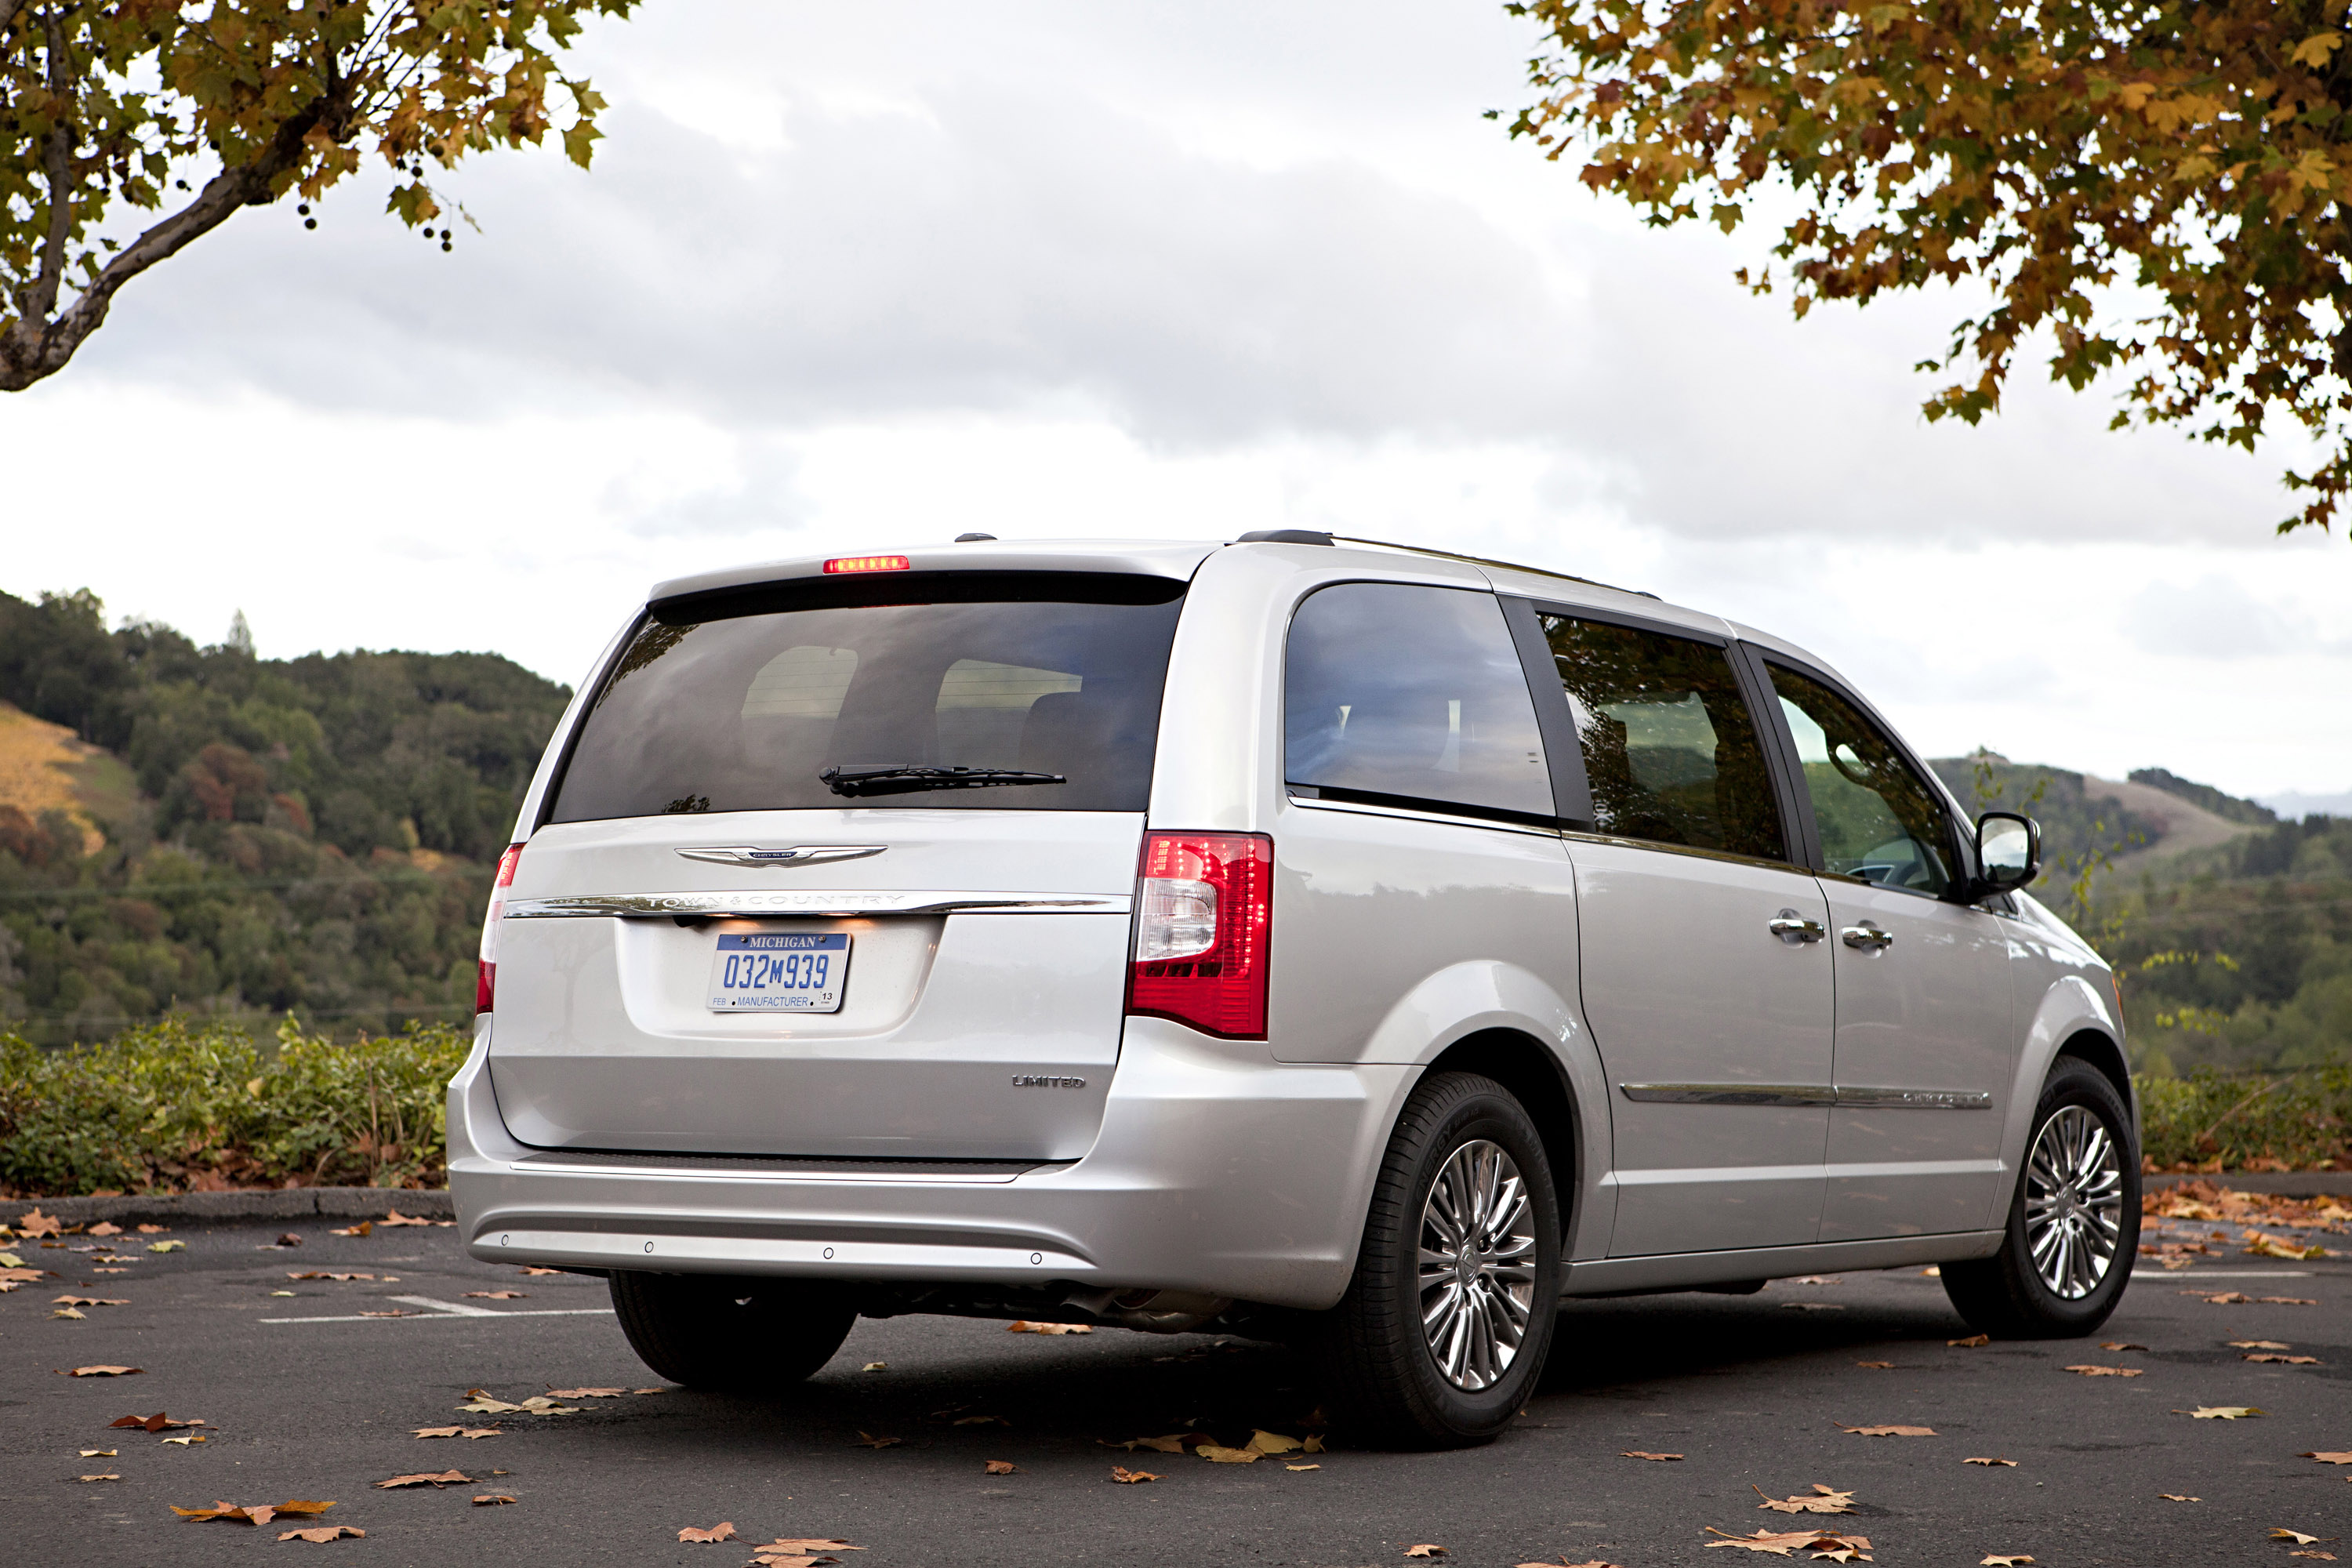 2013 chrysler town country s gets enhanced. Black Bedroom Furniture Sets. Home Design Ideas